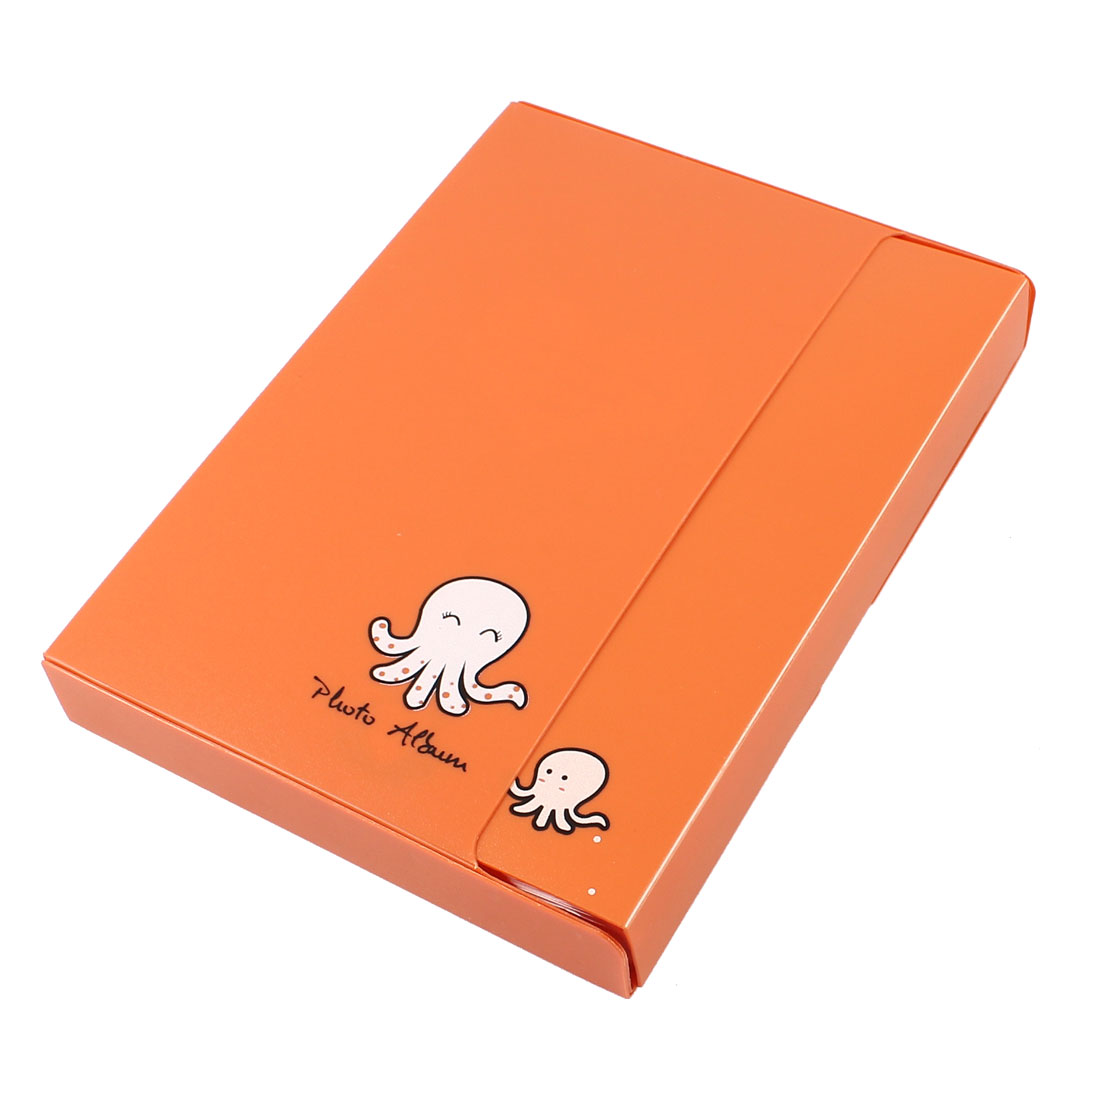 PVC Plastic Cartoon Octopus Print Orange Cover 20 Page Photo Album